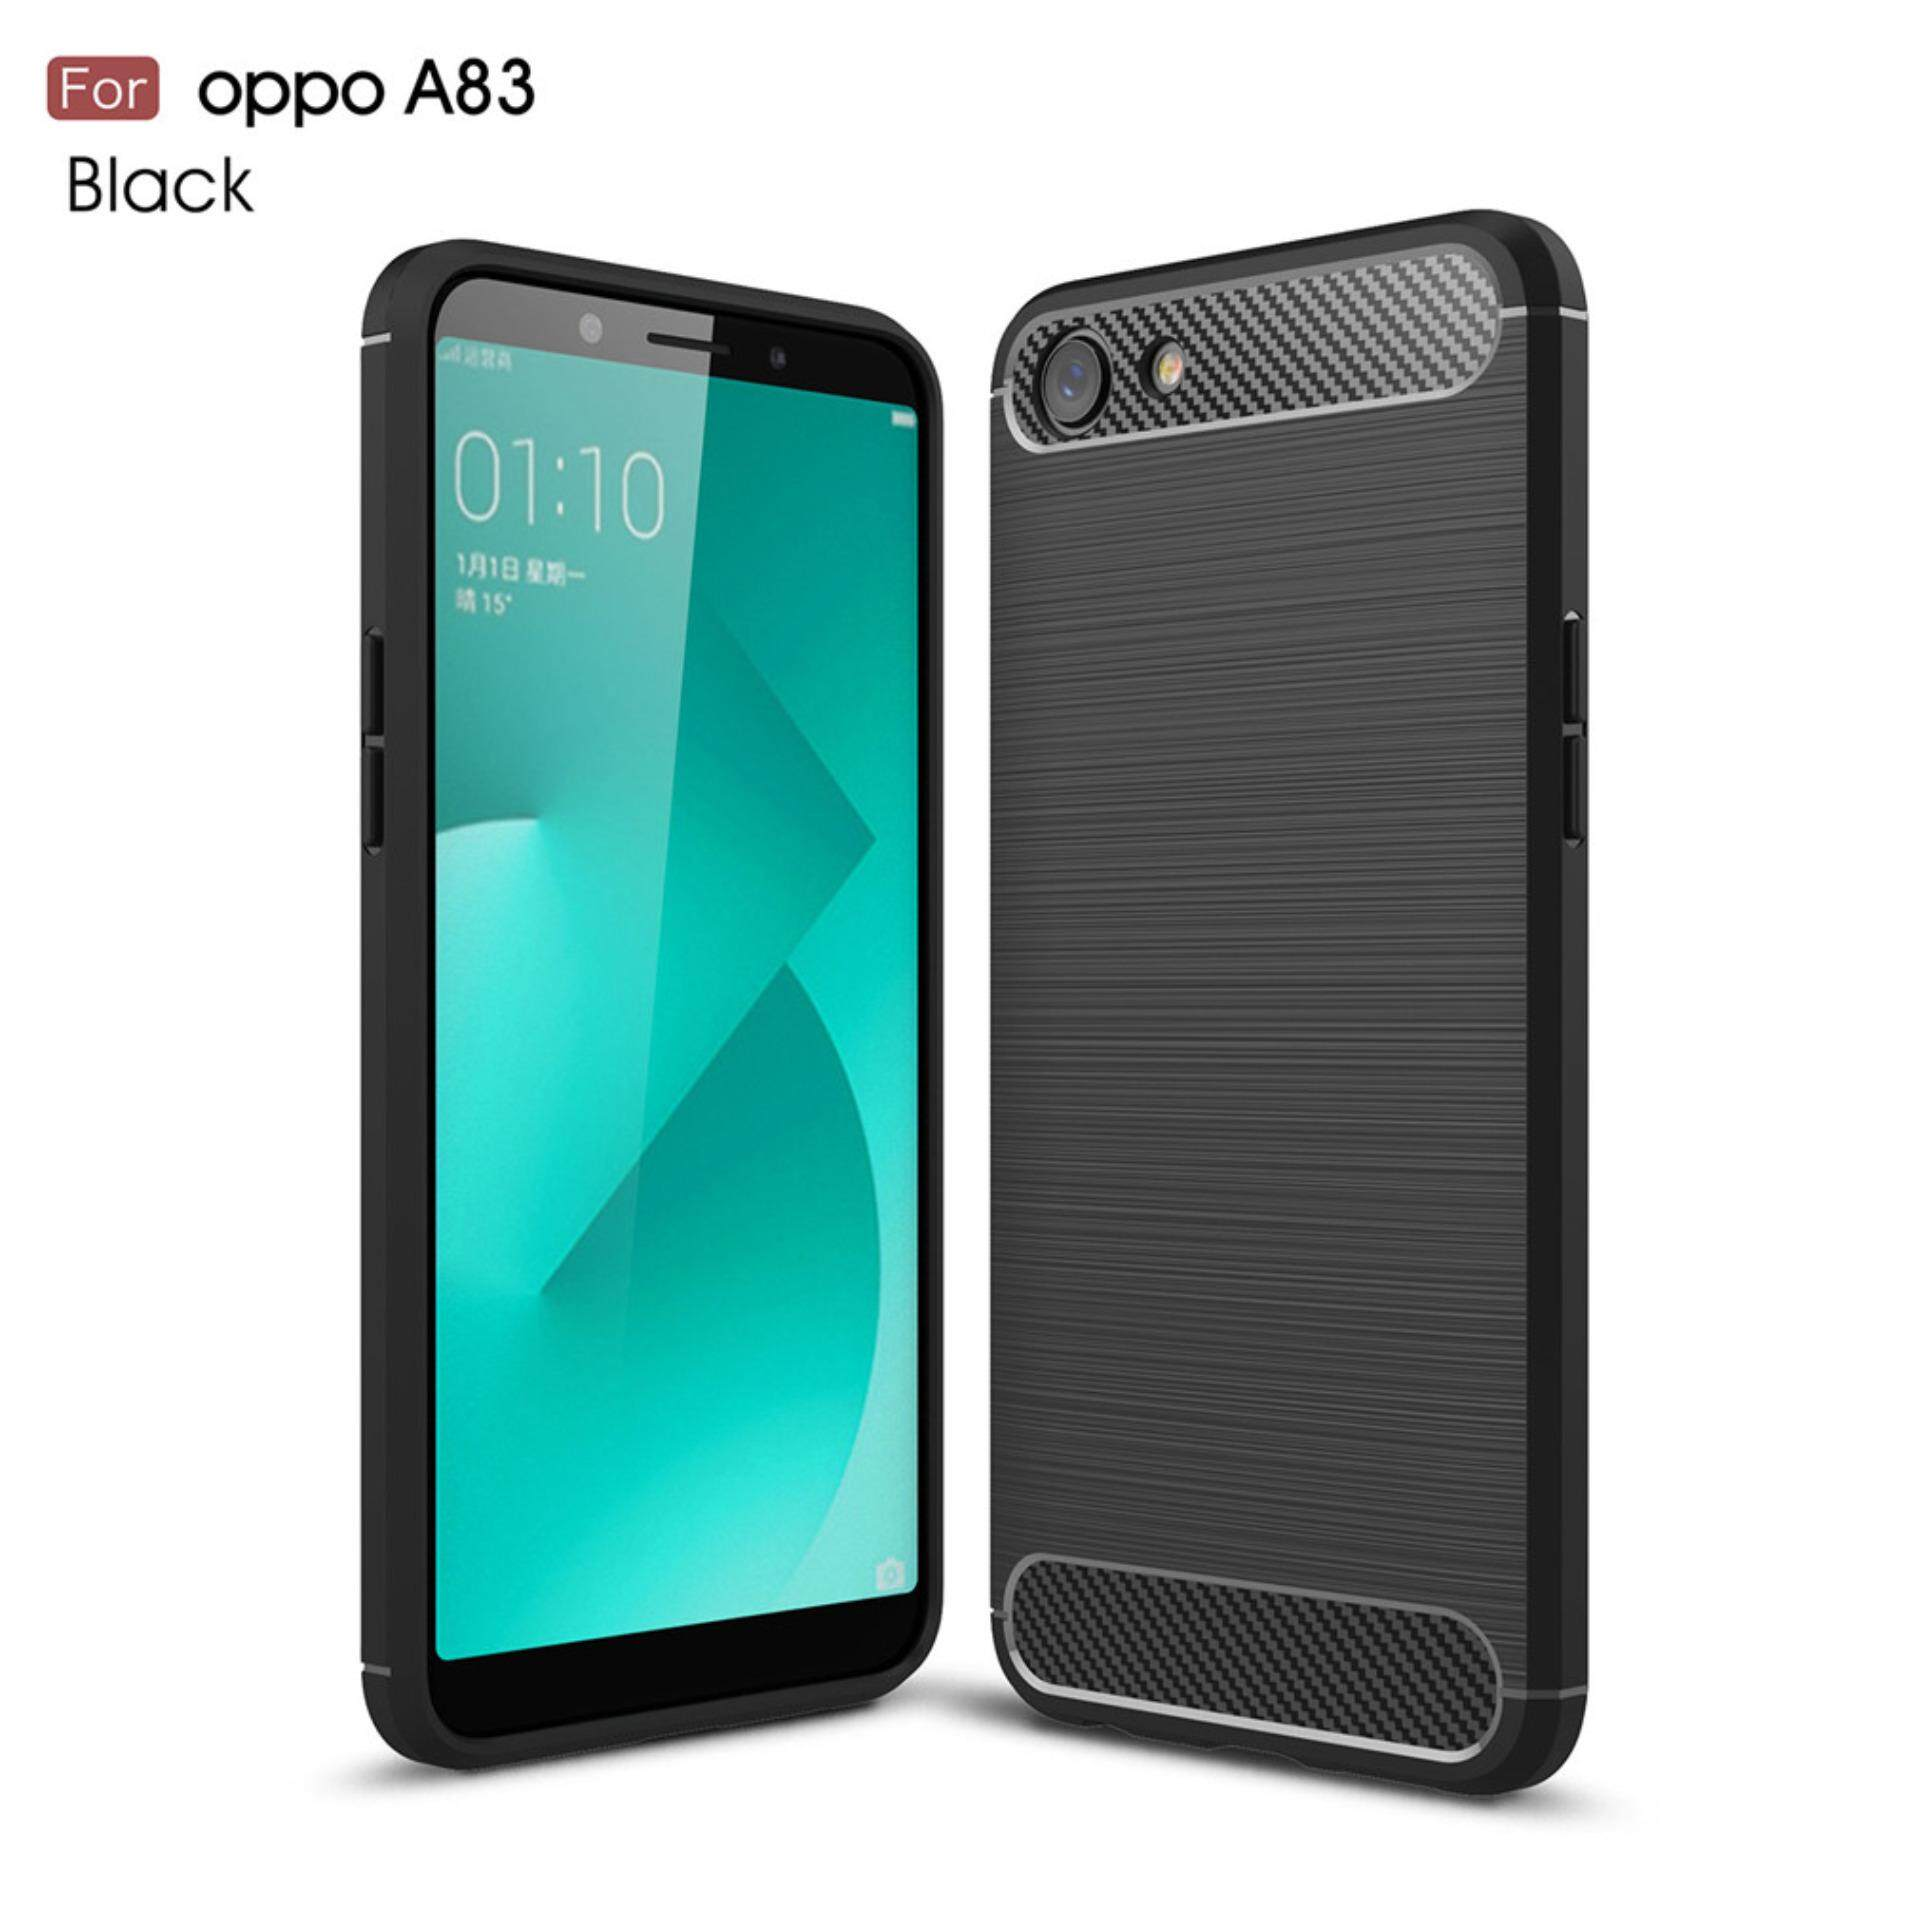 ราคา Kunpon For Oppo A83 Case Rugged Armor With Resilient Shock Absorption And Carbon Fiber Tpu Non Slip Anti Scratch Ultra Slim Cover Case For Oppo A83 Matte Black Intl ออนไลน์